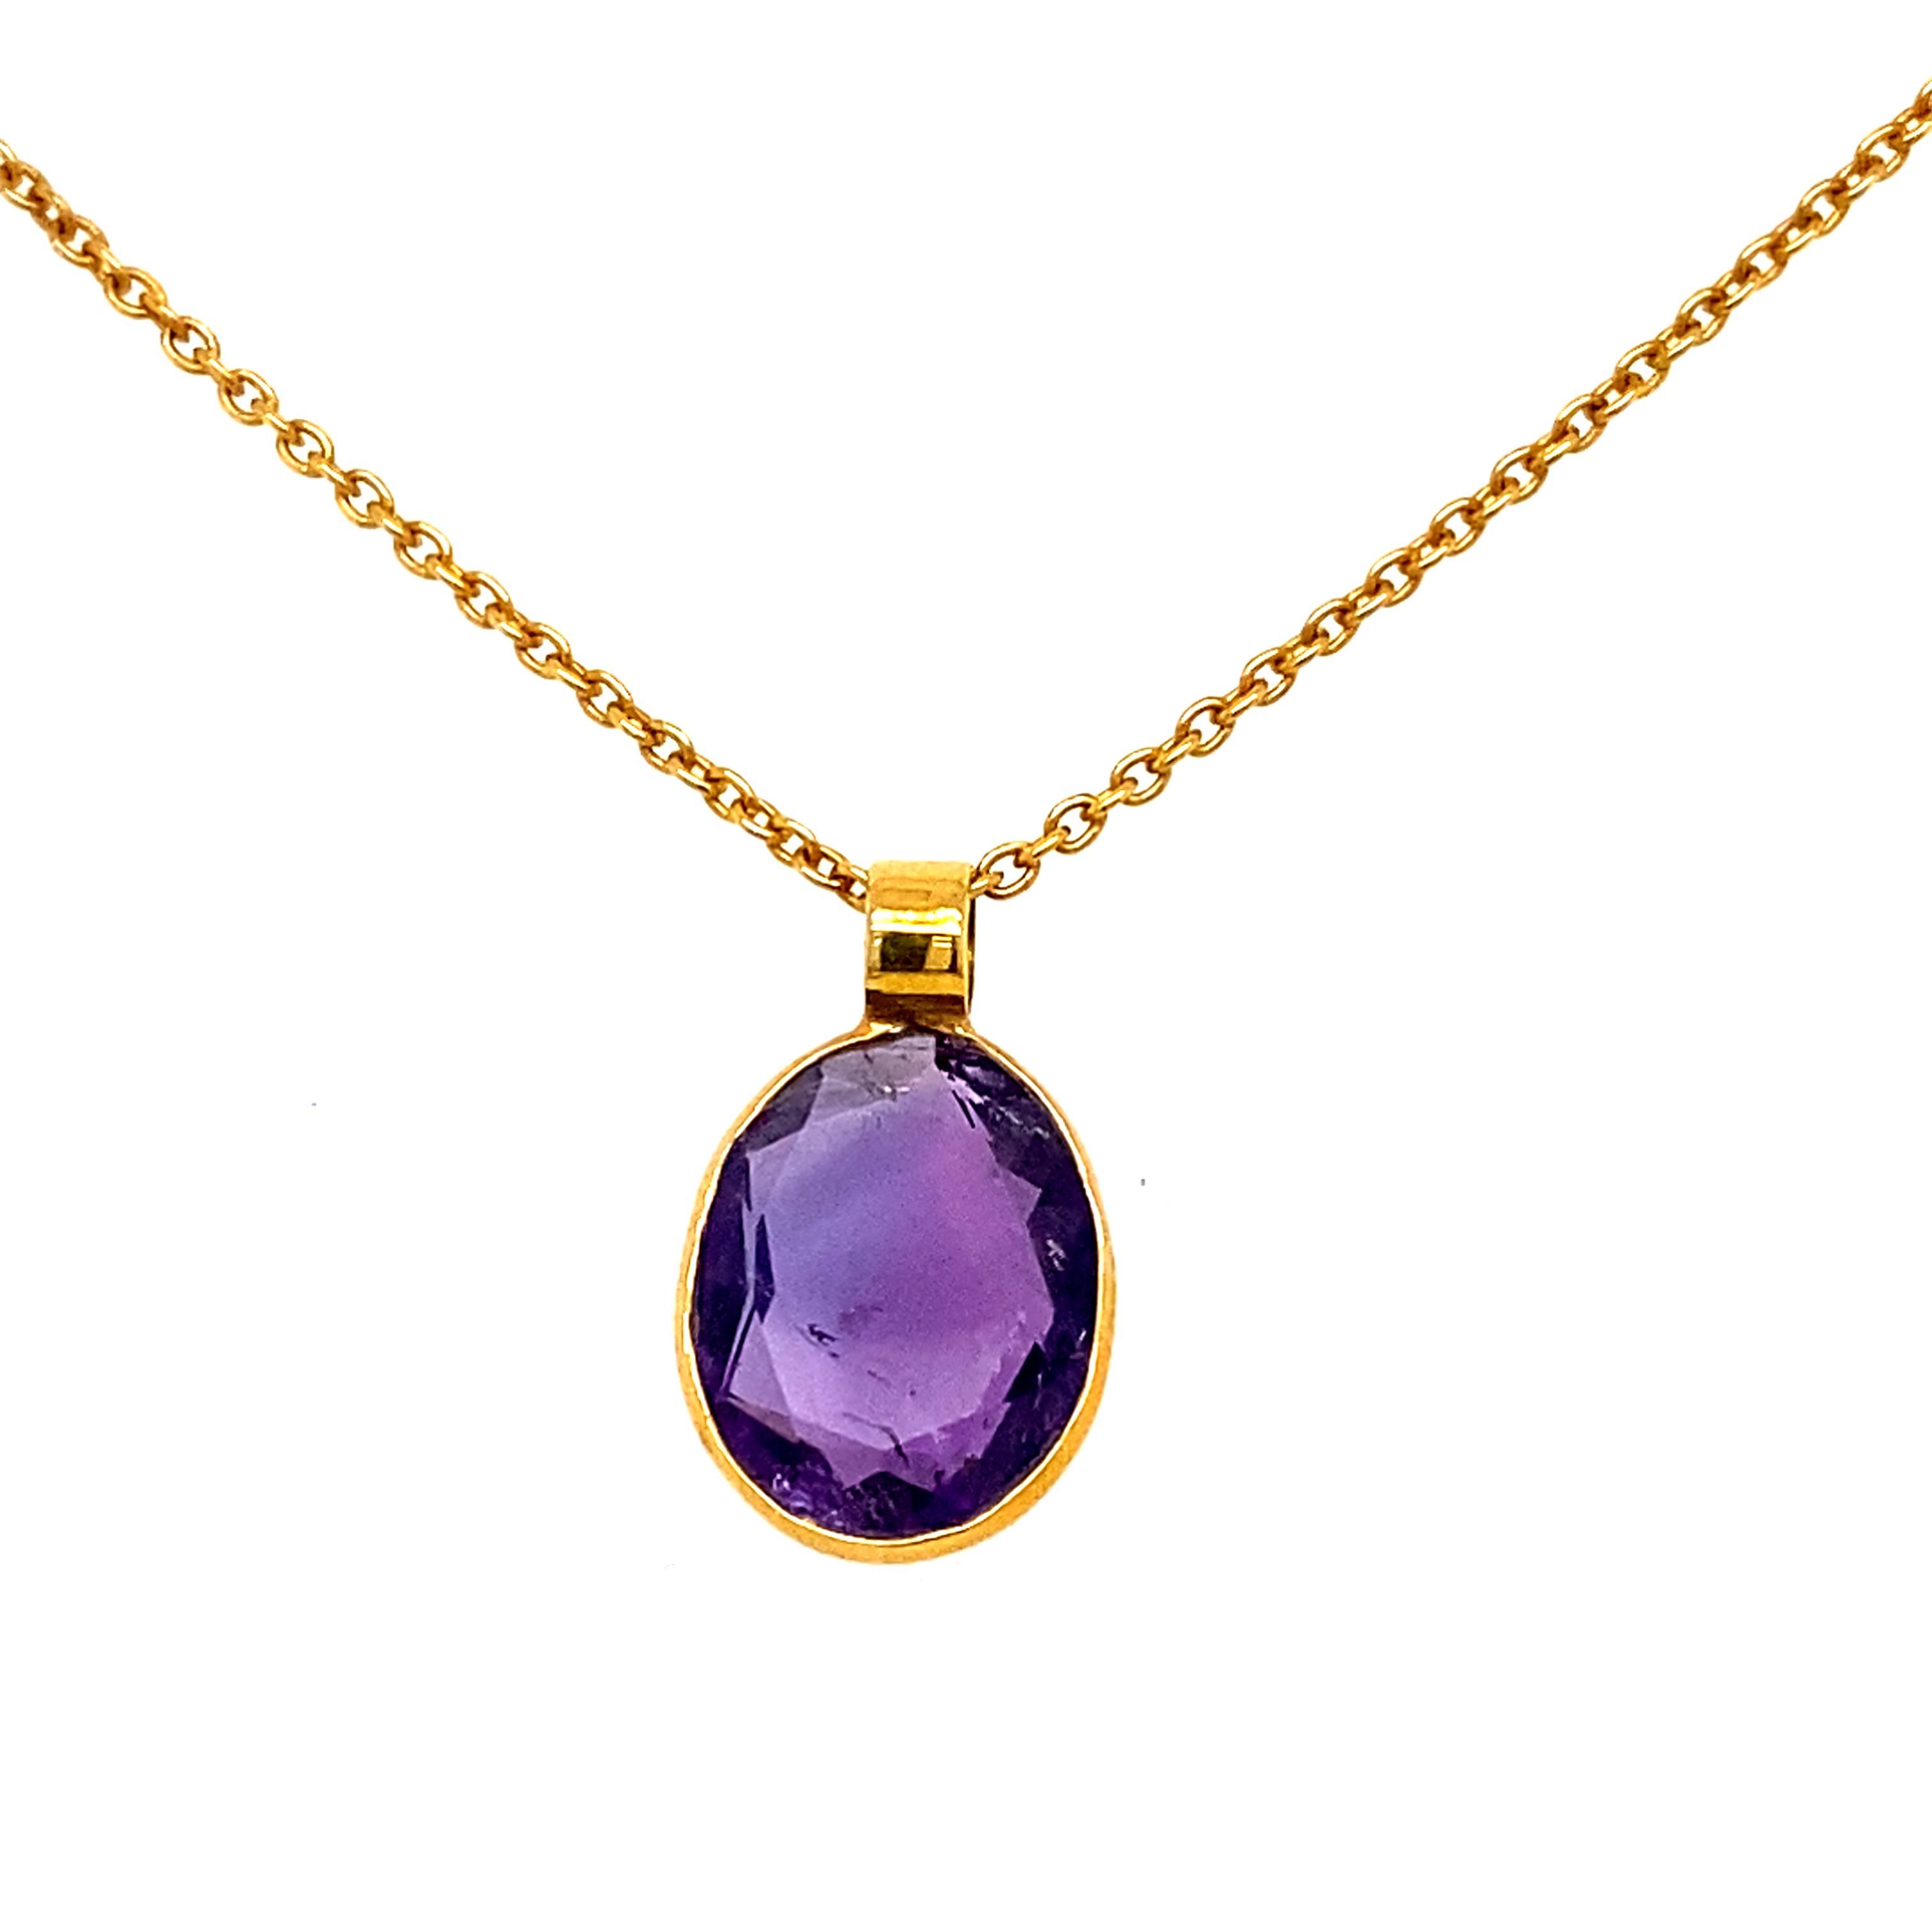 18 Carat Yellow Gold, Amethyst and Diamond Slice Necklace